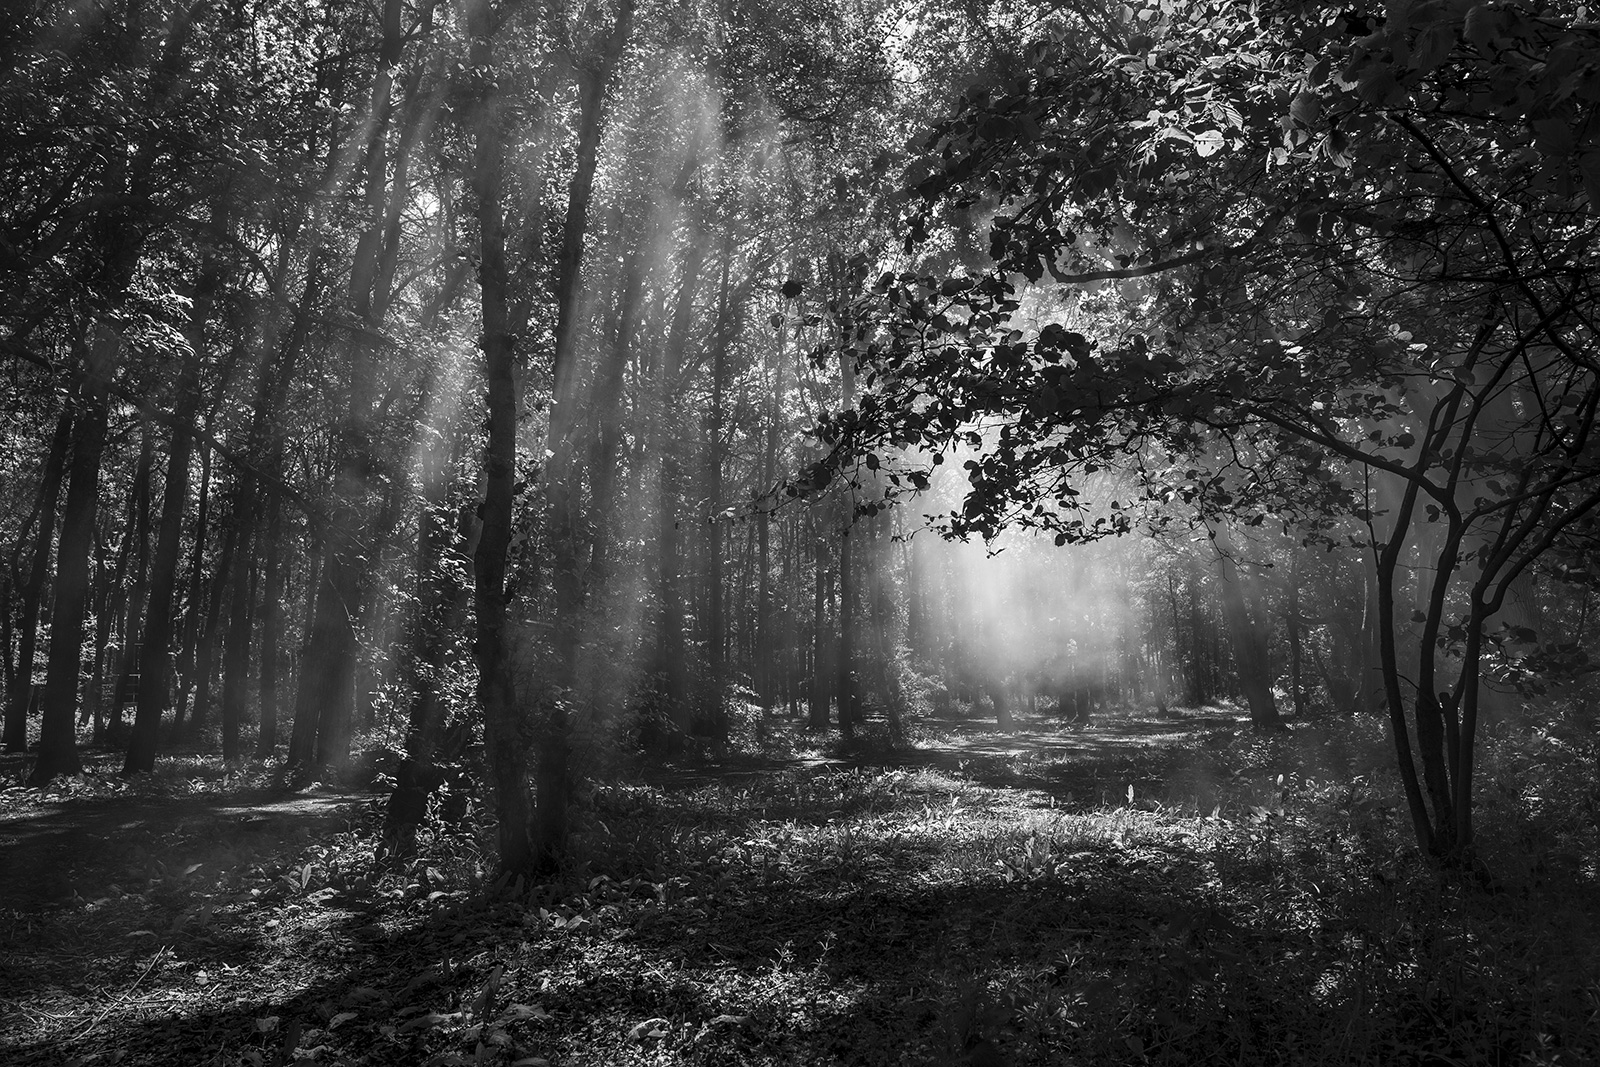 Sun rays through smoke among trees Glyndbourne Wood Halland East Sussex UK black and white rural landscape ©P. Maton 2019 eyeteeth.net